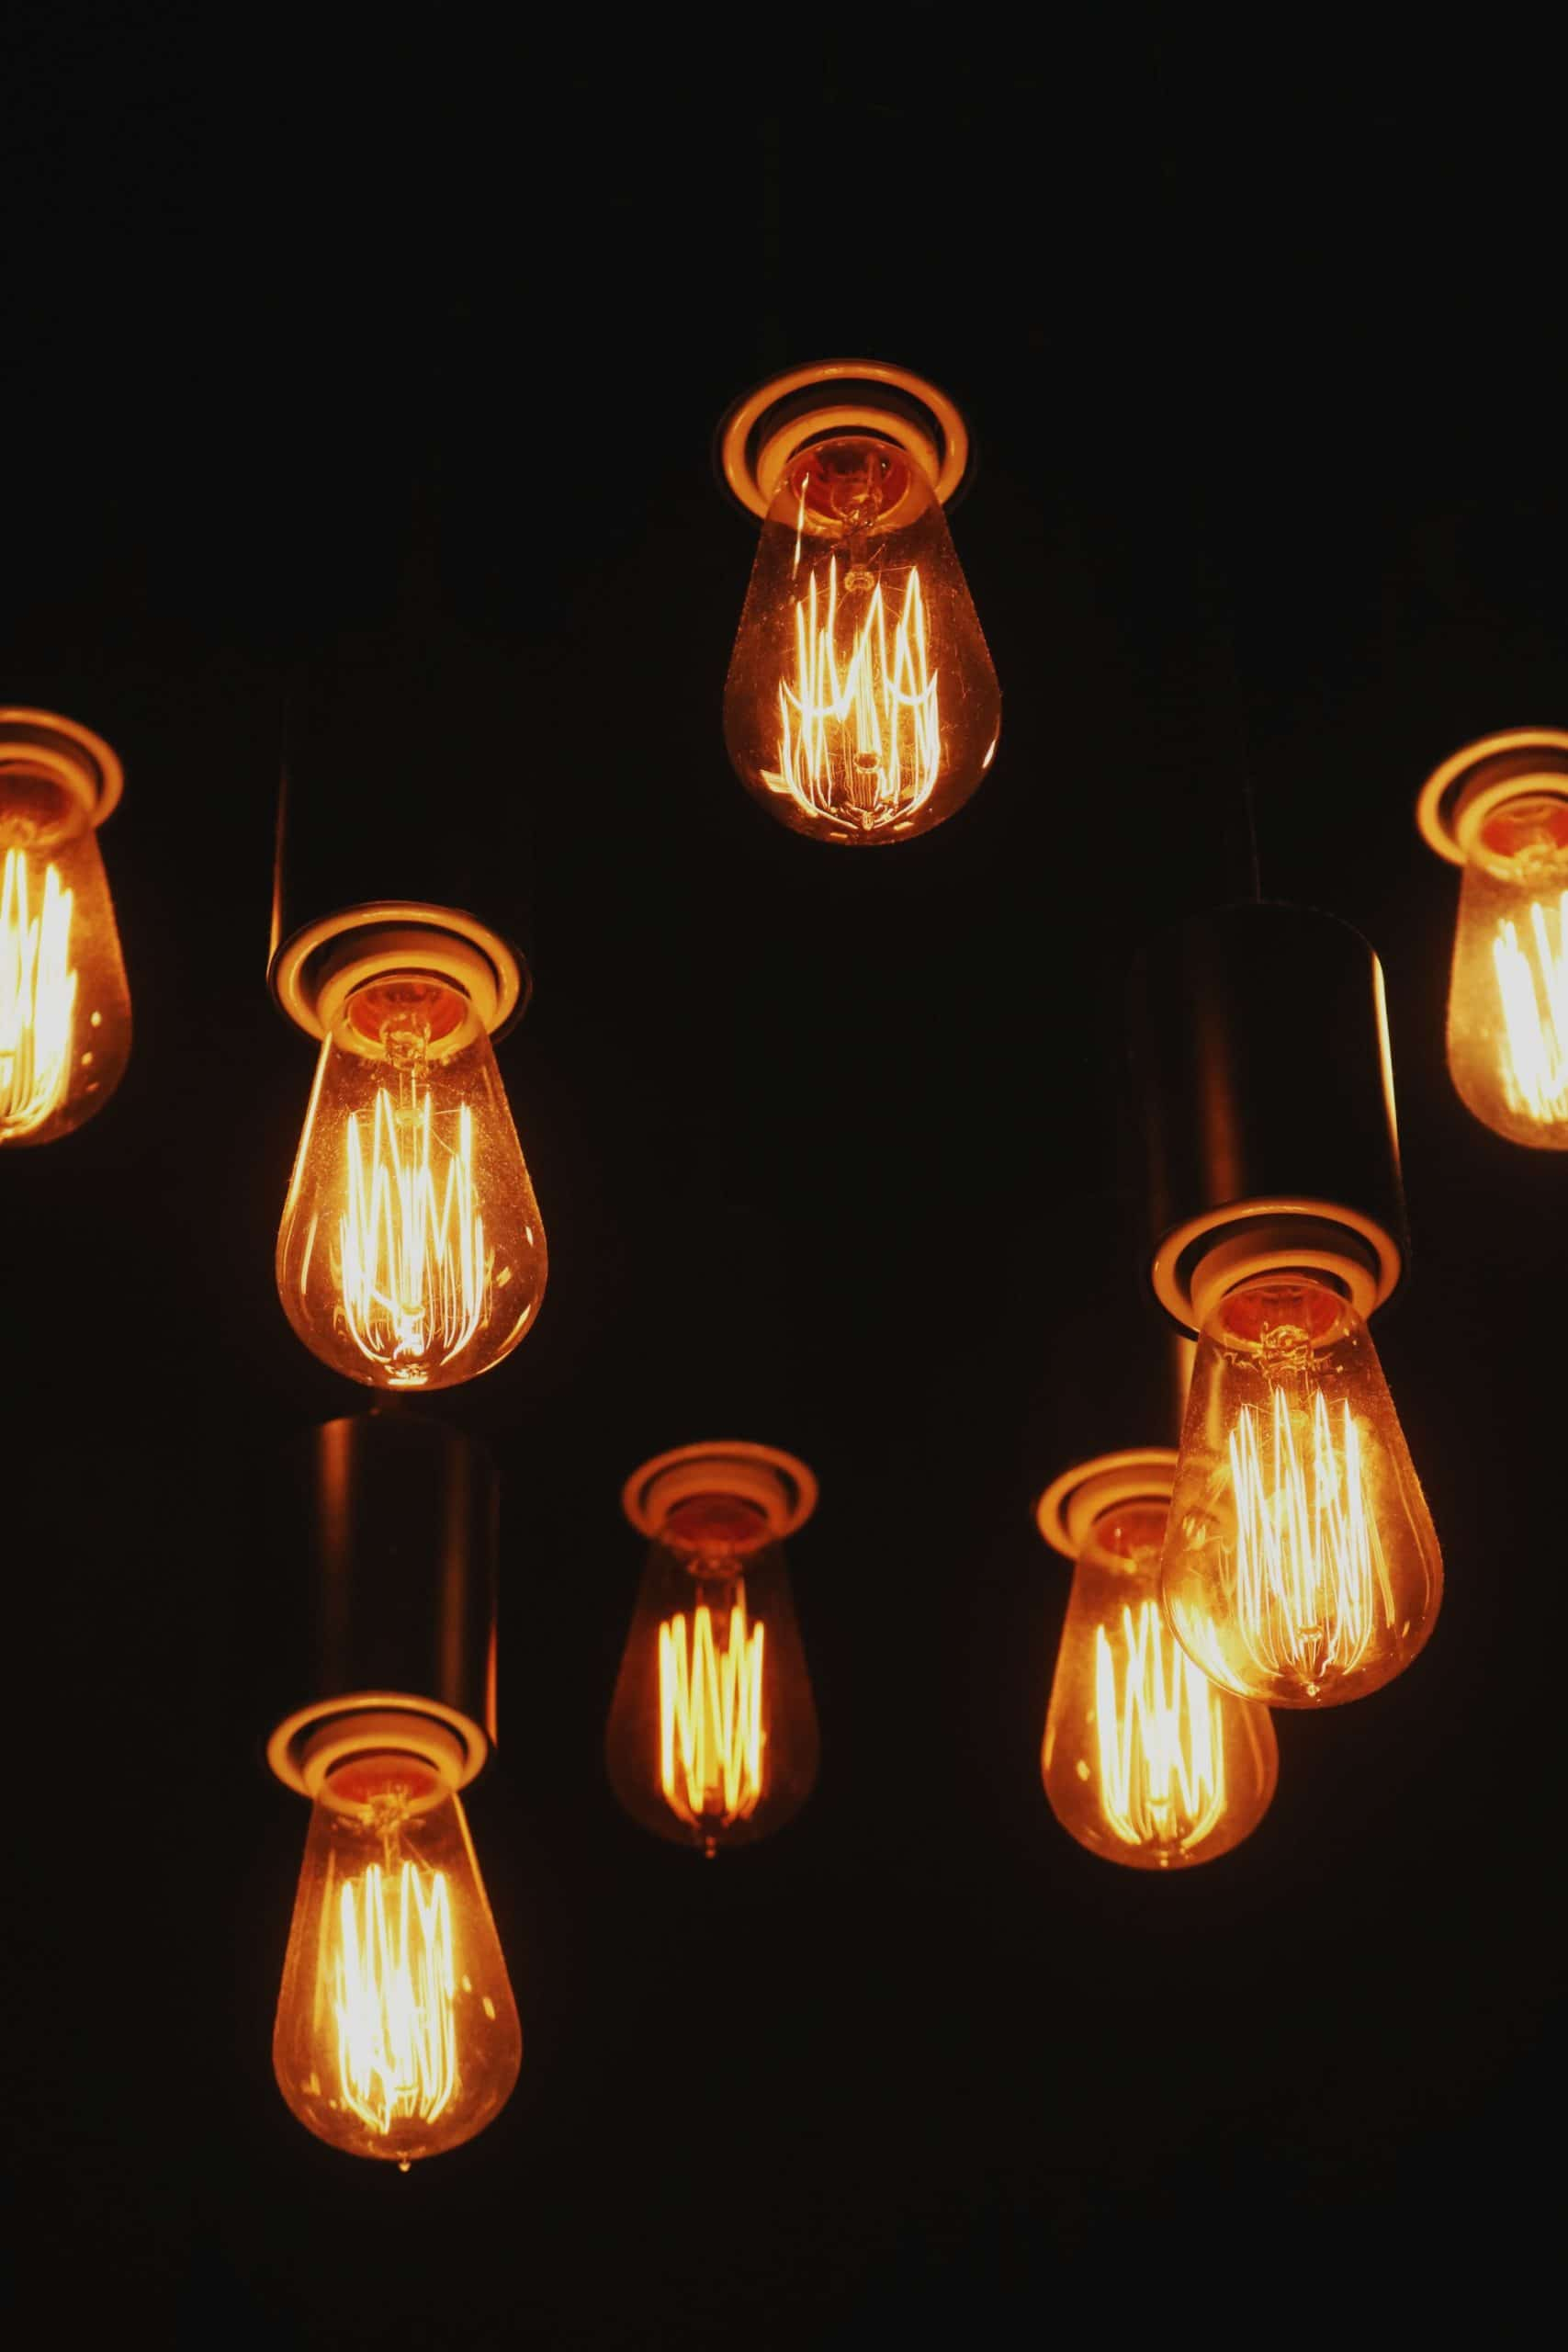 A photo of unshaded lightbulbs handing from a ceiling